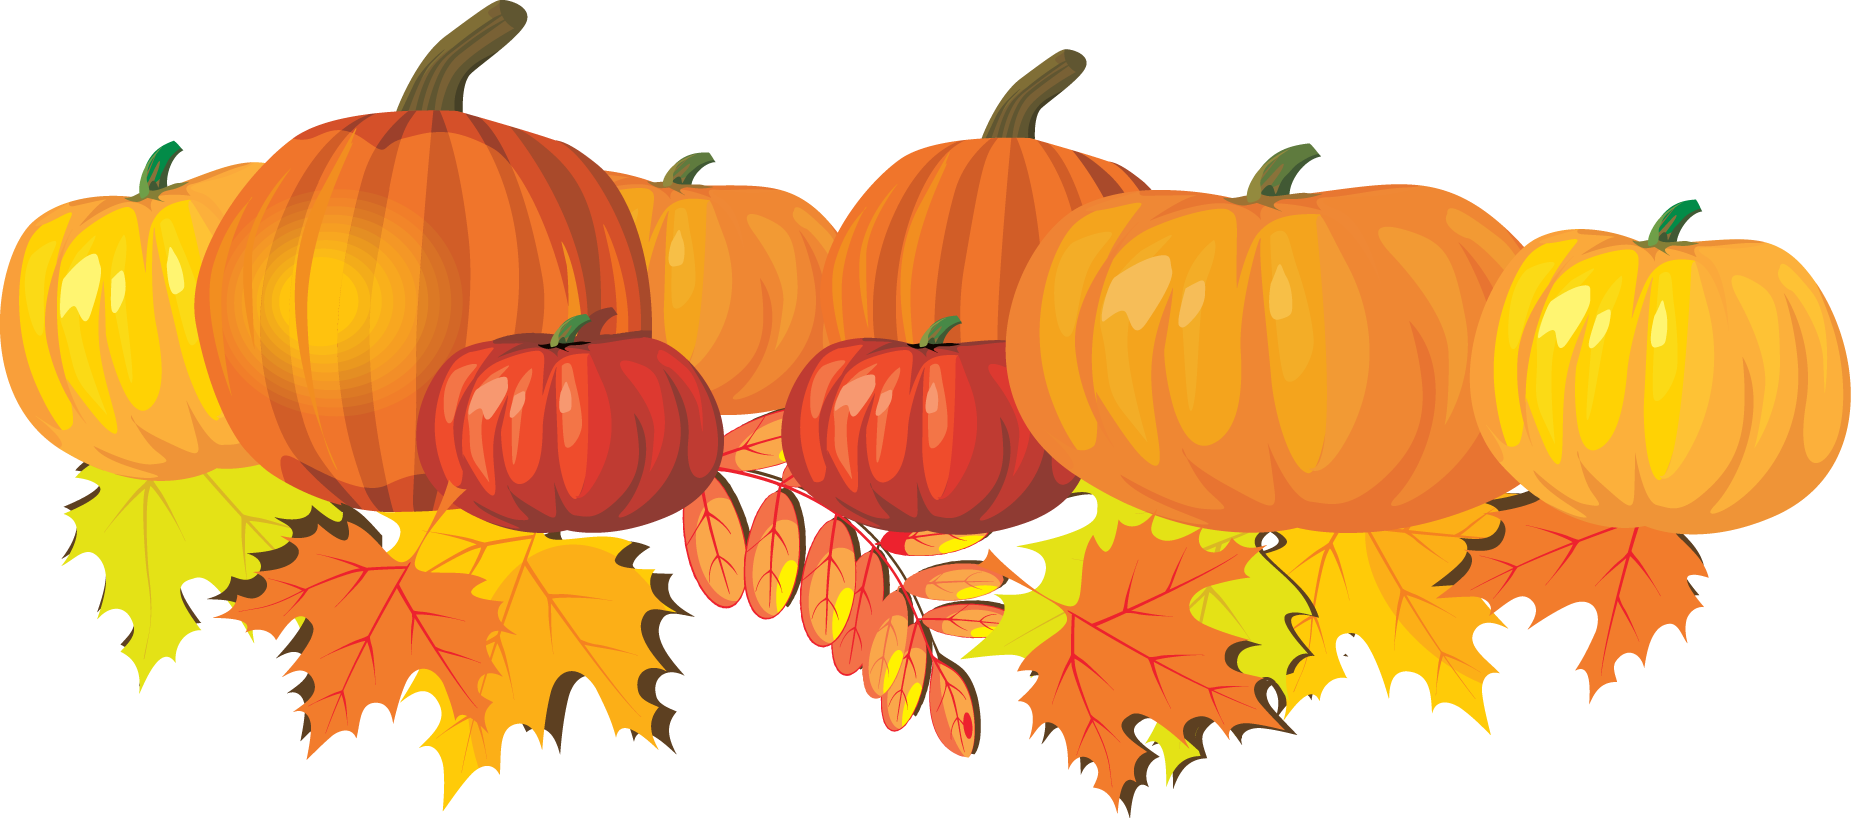 Gourd clipart orange pumpkin Leaves and Clip  Pumpkins